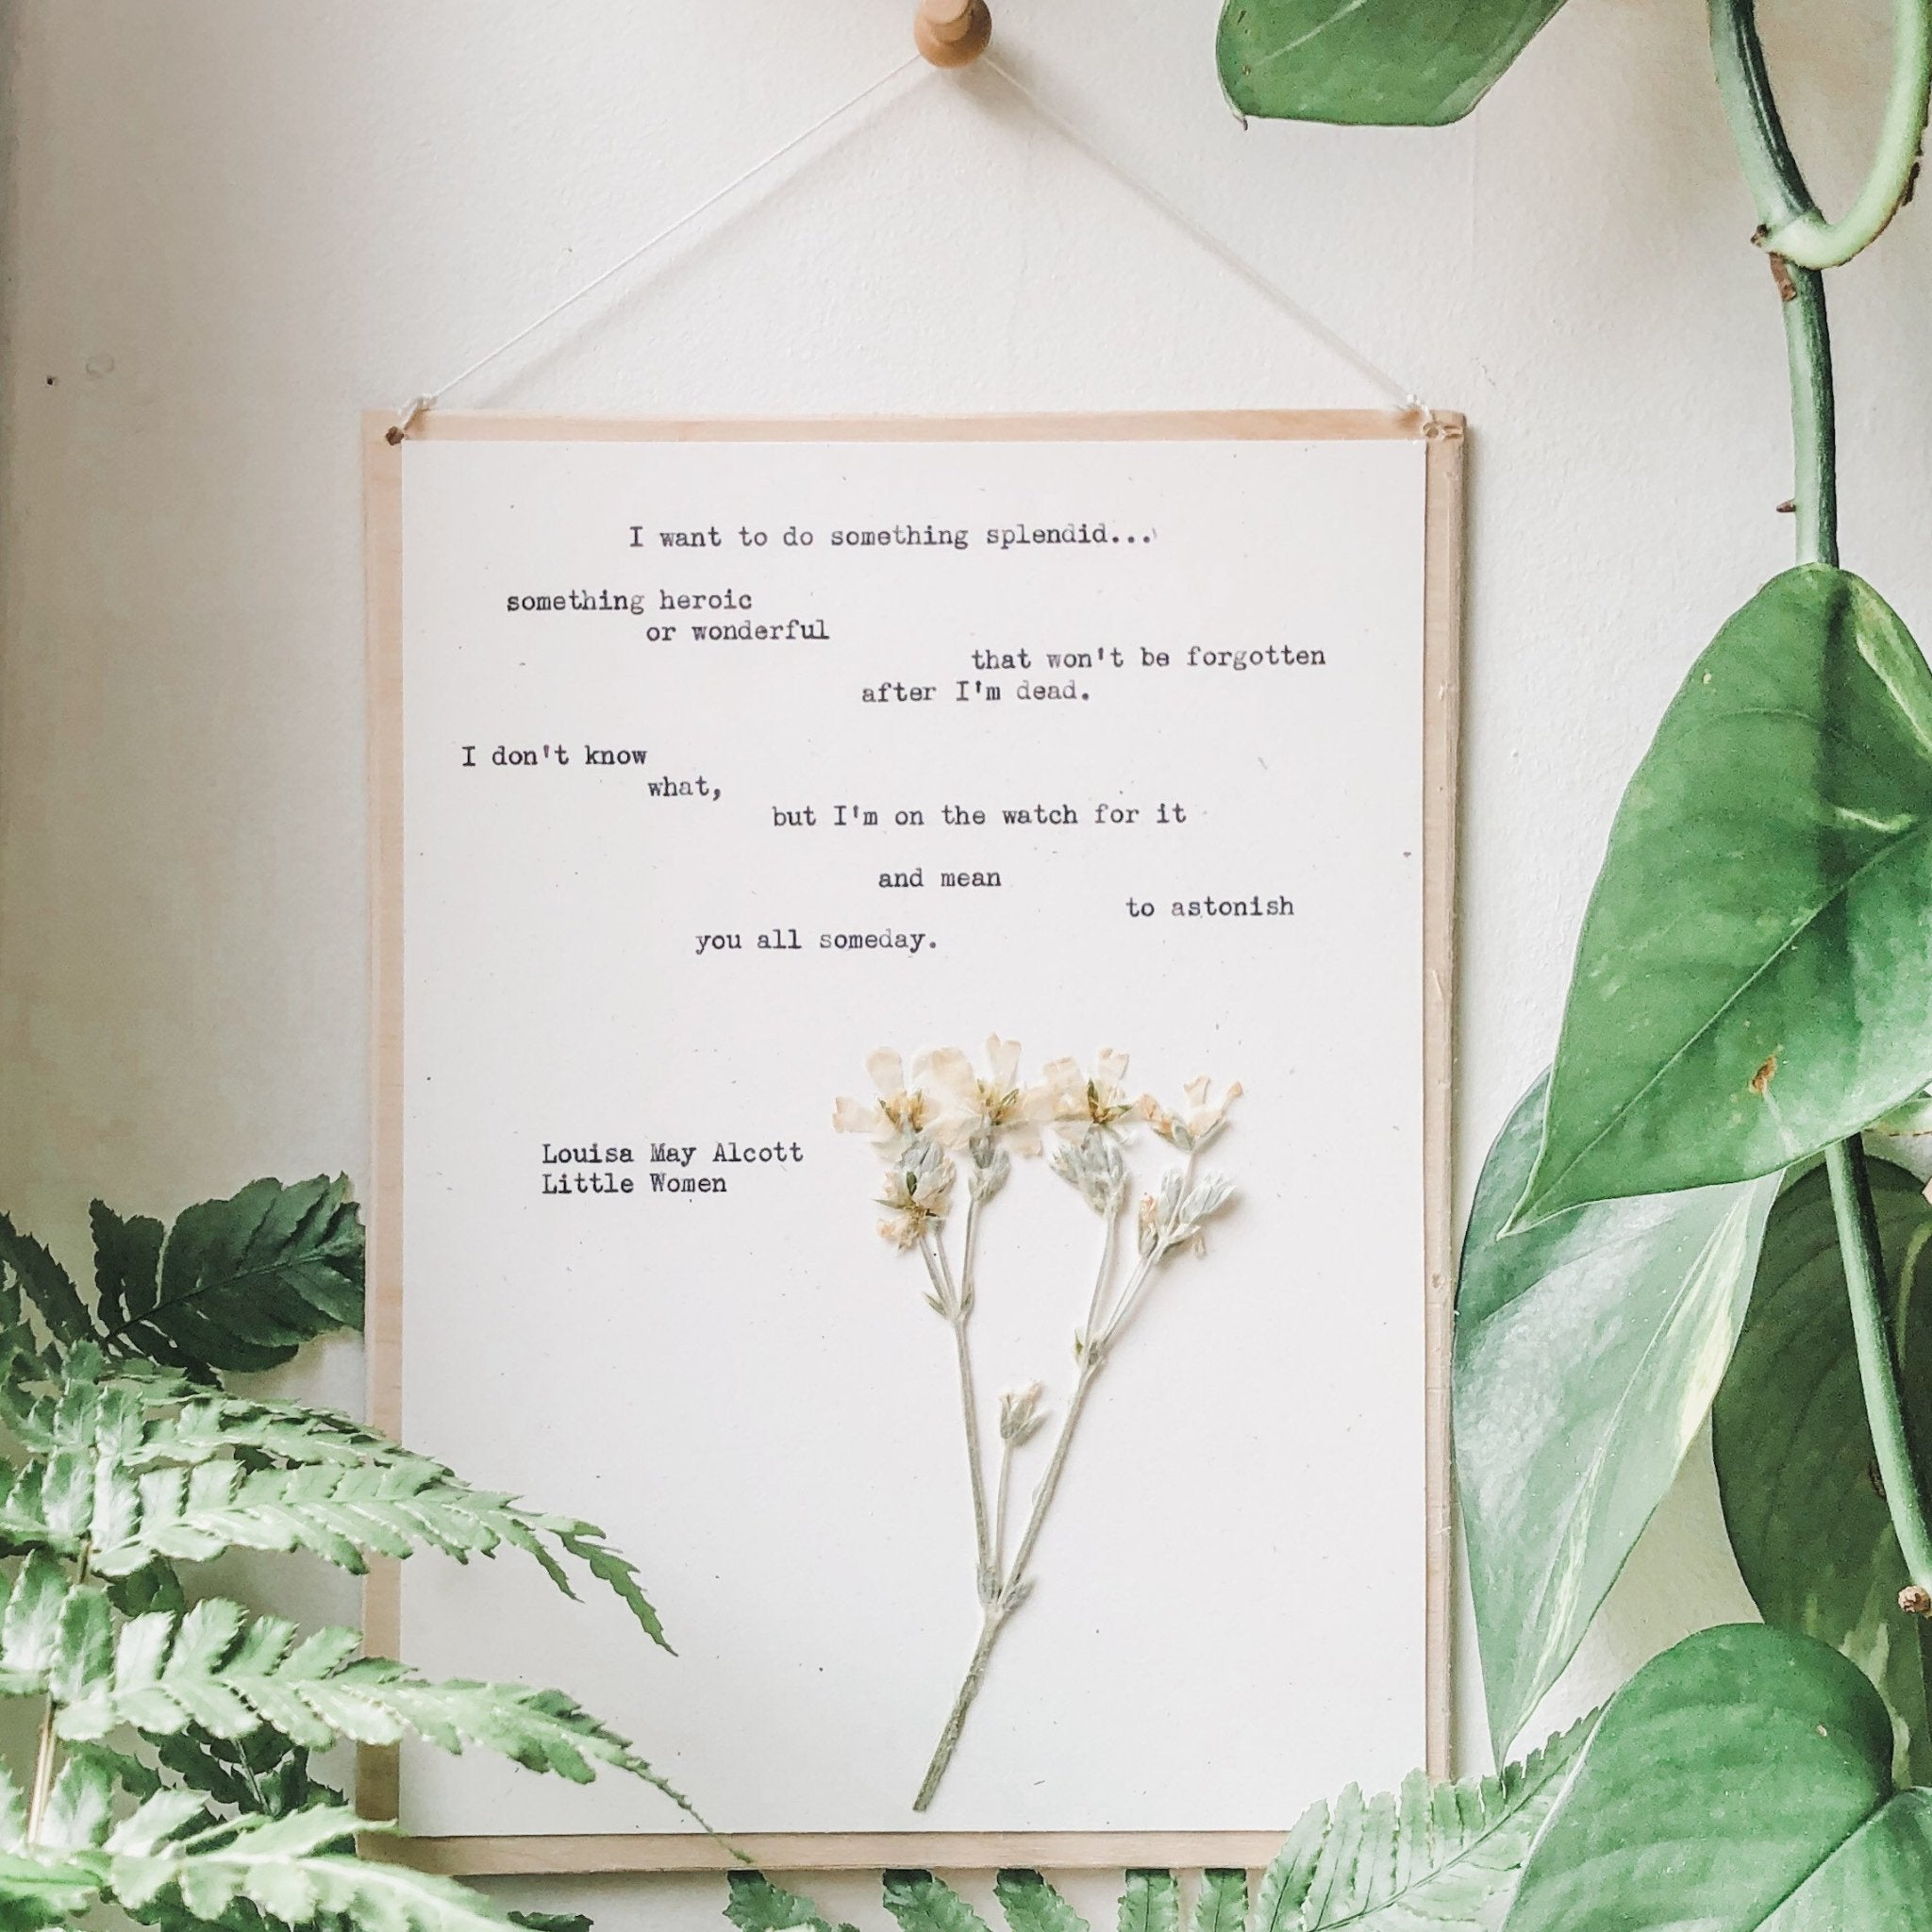 louisa may alcott, I want to do something splendid  quote typed in typewriter font on white paper, mounted on birch wood and paired with a pressed flower. handmade décor by flora & phrase